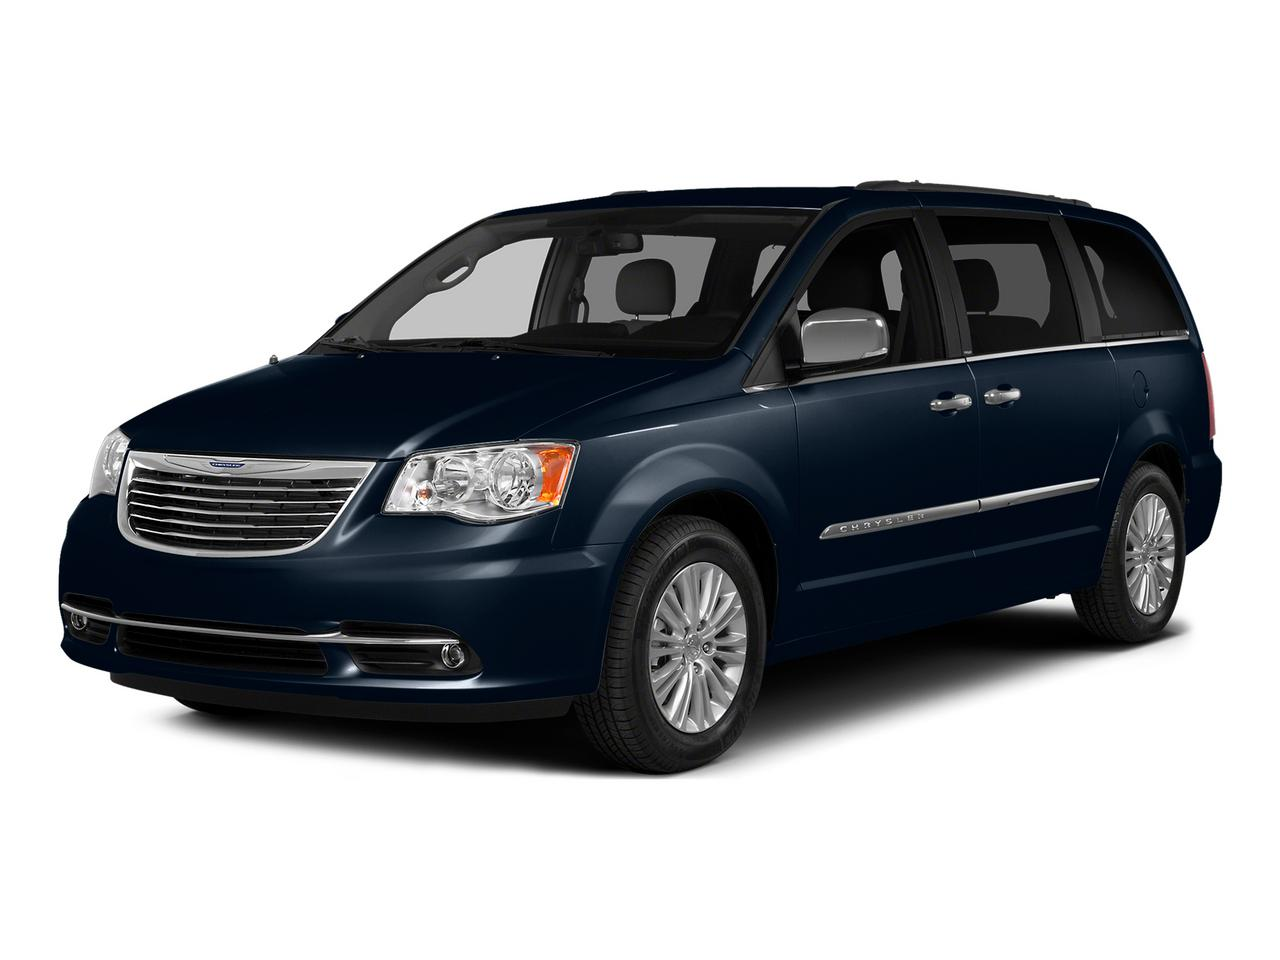 2015 Chrysler Town & Country Vehicle Photo in Plainfield, IL 60586